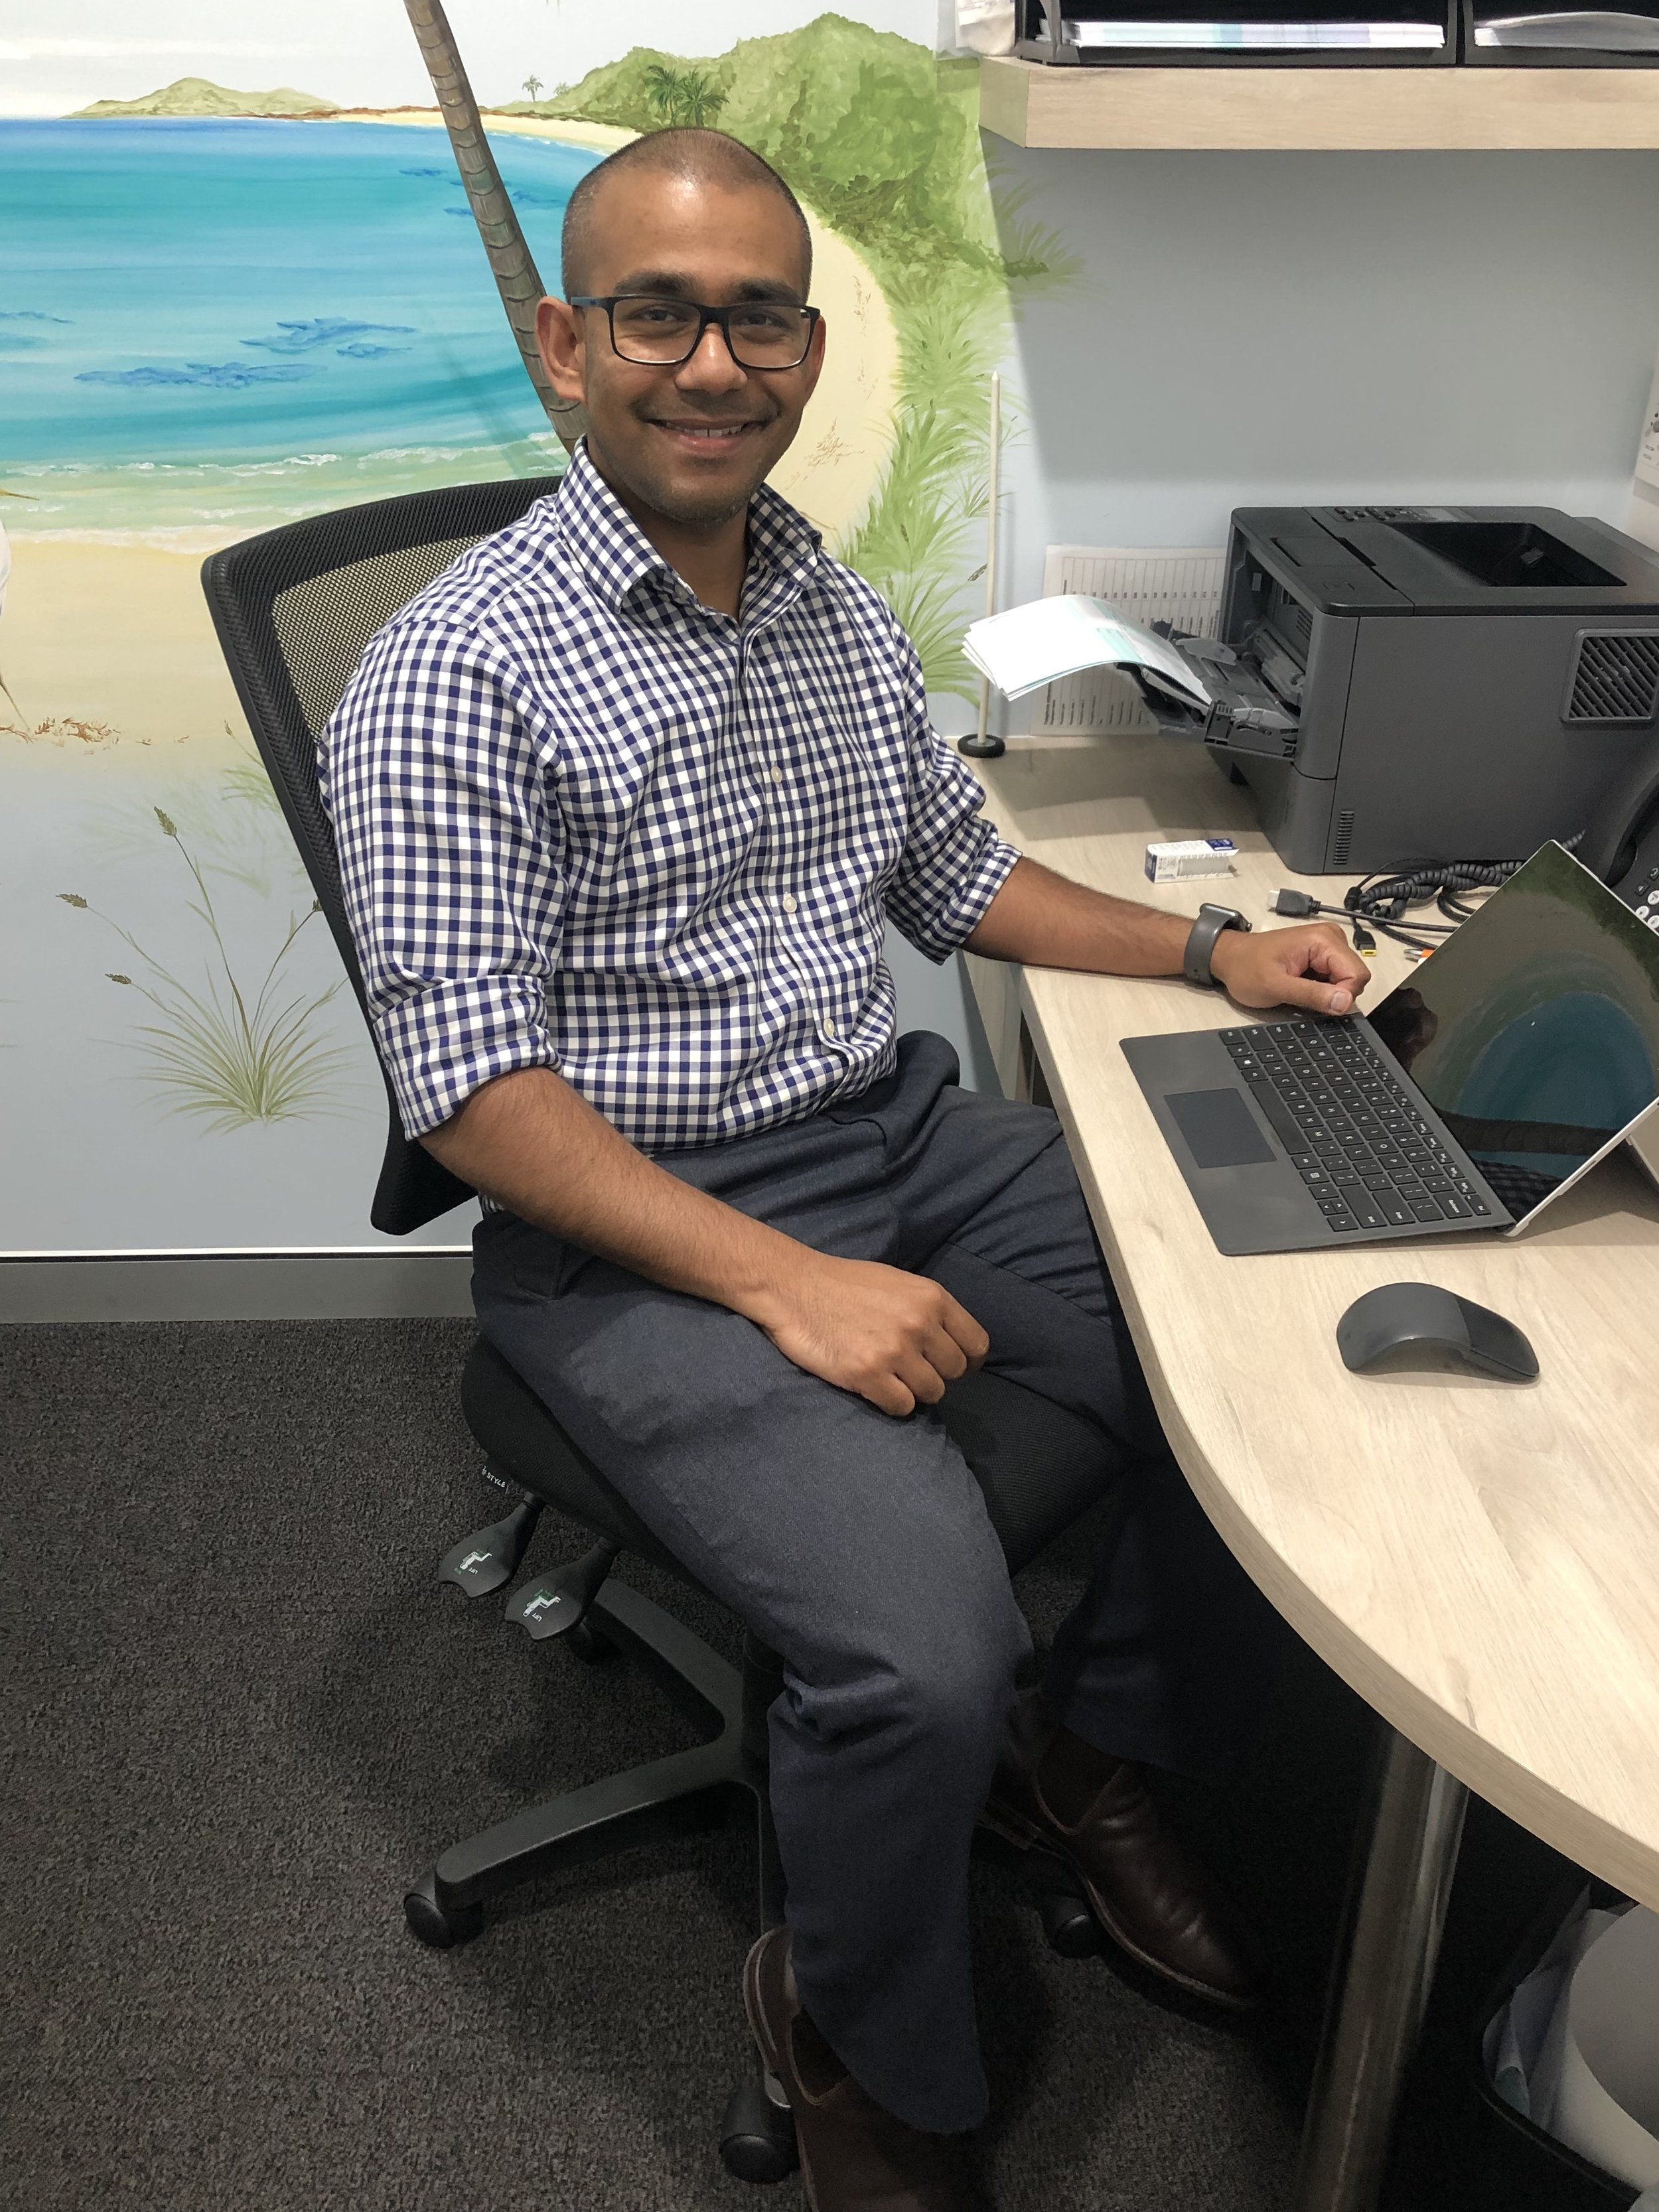 Dr Nuwan Dharmaratne - BSc Adv (Hons I Sydney University), MBBS (Australian National University) F.R.A.C.G.P; Dip Child HealthDr Nuwan Joined the team in 2015. He spent much of his childhood in northwestern Sydney and has a good knowledge of the benefits and challenges faced by patients in the area. He completed his bachelor's degree at the University of Sydney, majoring in neuroscience and was granted the university medal. He went on to study medicine at the Australian National University in Canberra and returned to Western Sydney to complete his hospital training. He subsequently obtained fellowship with the Royal Australian College of General Practitioners and also gained further qualifications in child health during this time. Nuwan enjoys the breadth and diversity of general practice. He has a special interest in paediatrics, treatment and prevention of chronic disease and men's health. Dr Nuwan is also actively involved in training the next generation of general practitioners and also works as a medical educator with GP Synergy.